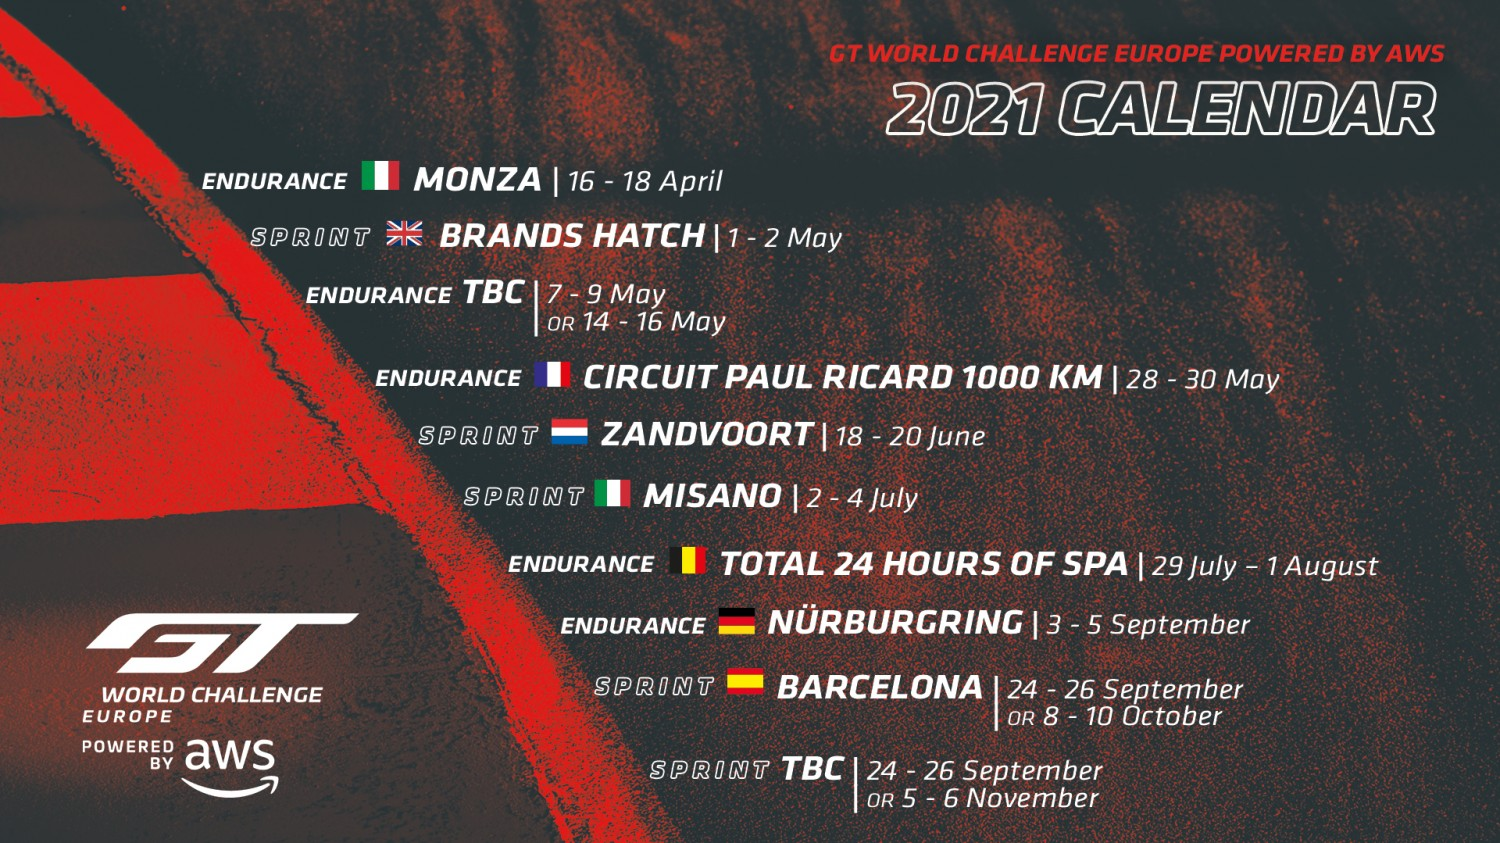 GT World Challenge Europe Powered by AWS confirms return to 10-round championship in 2021